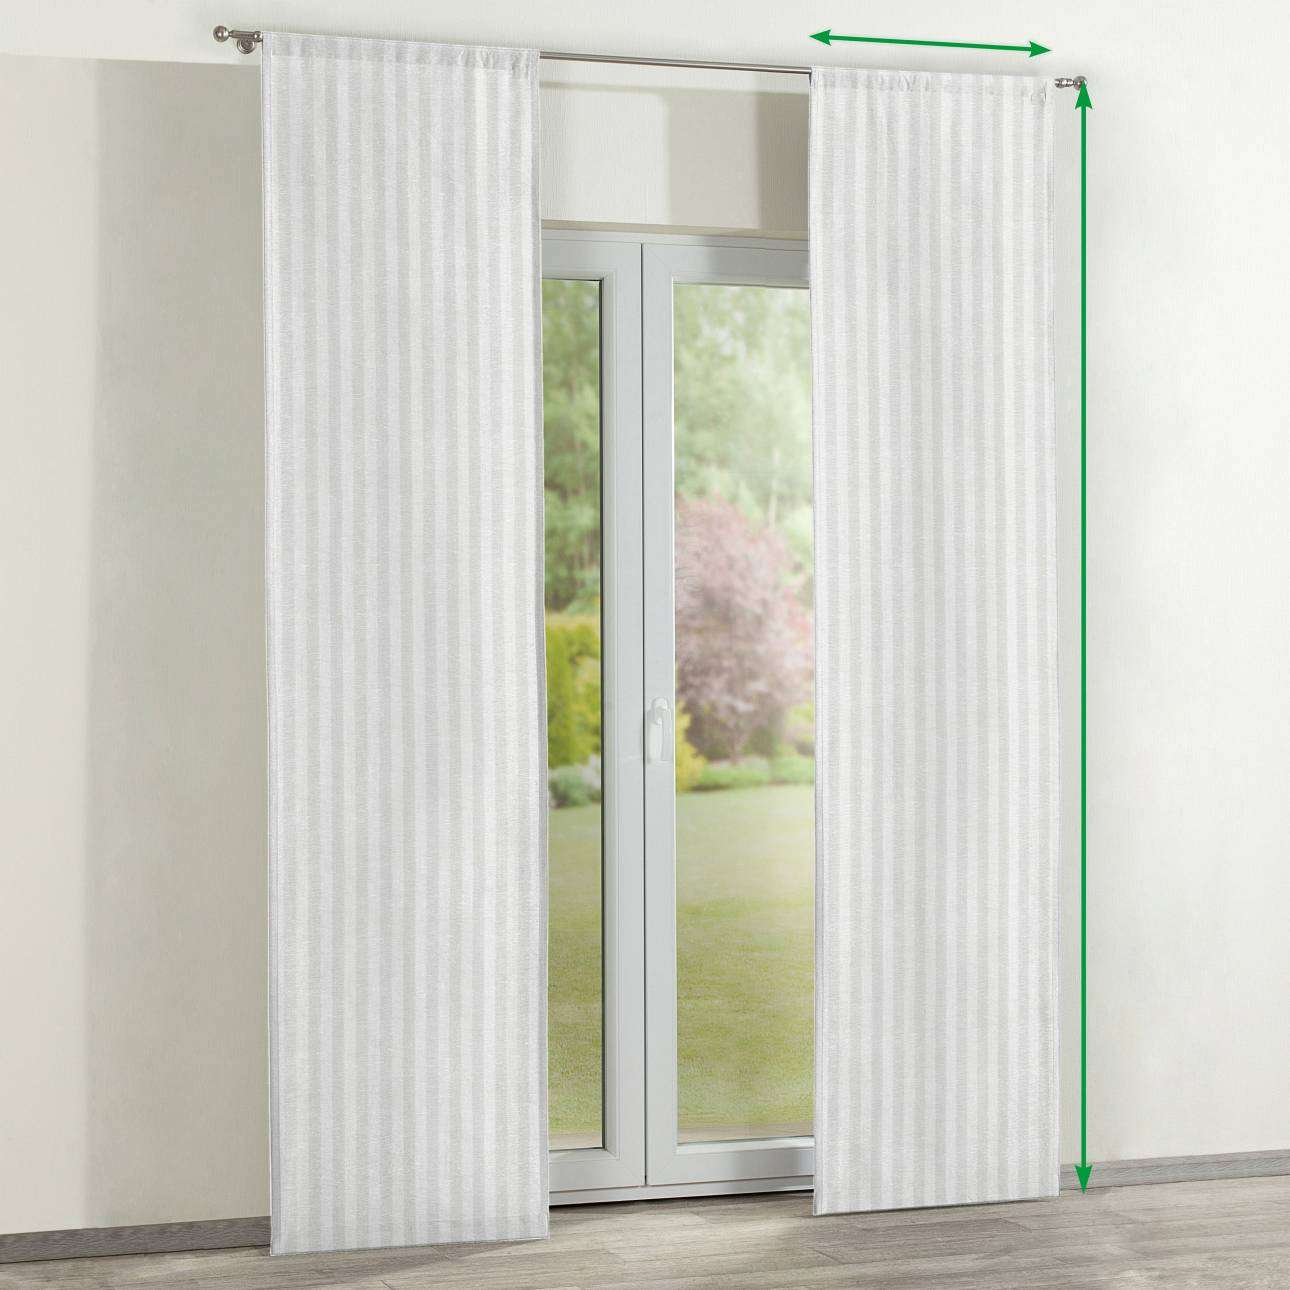 Slot panel curtains – Set of 2 in collection Linen , fabric: 392-03